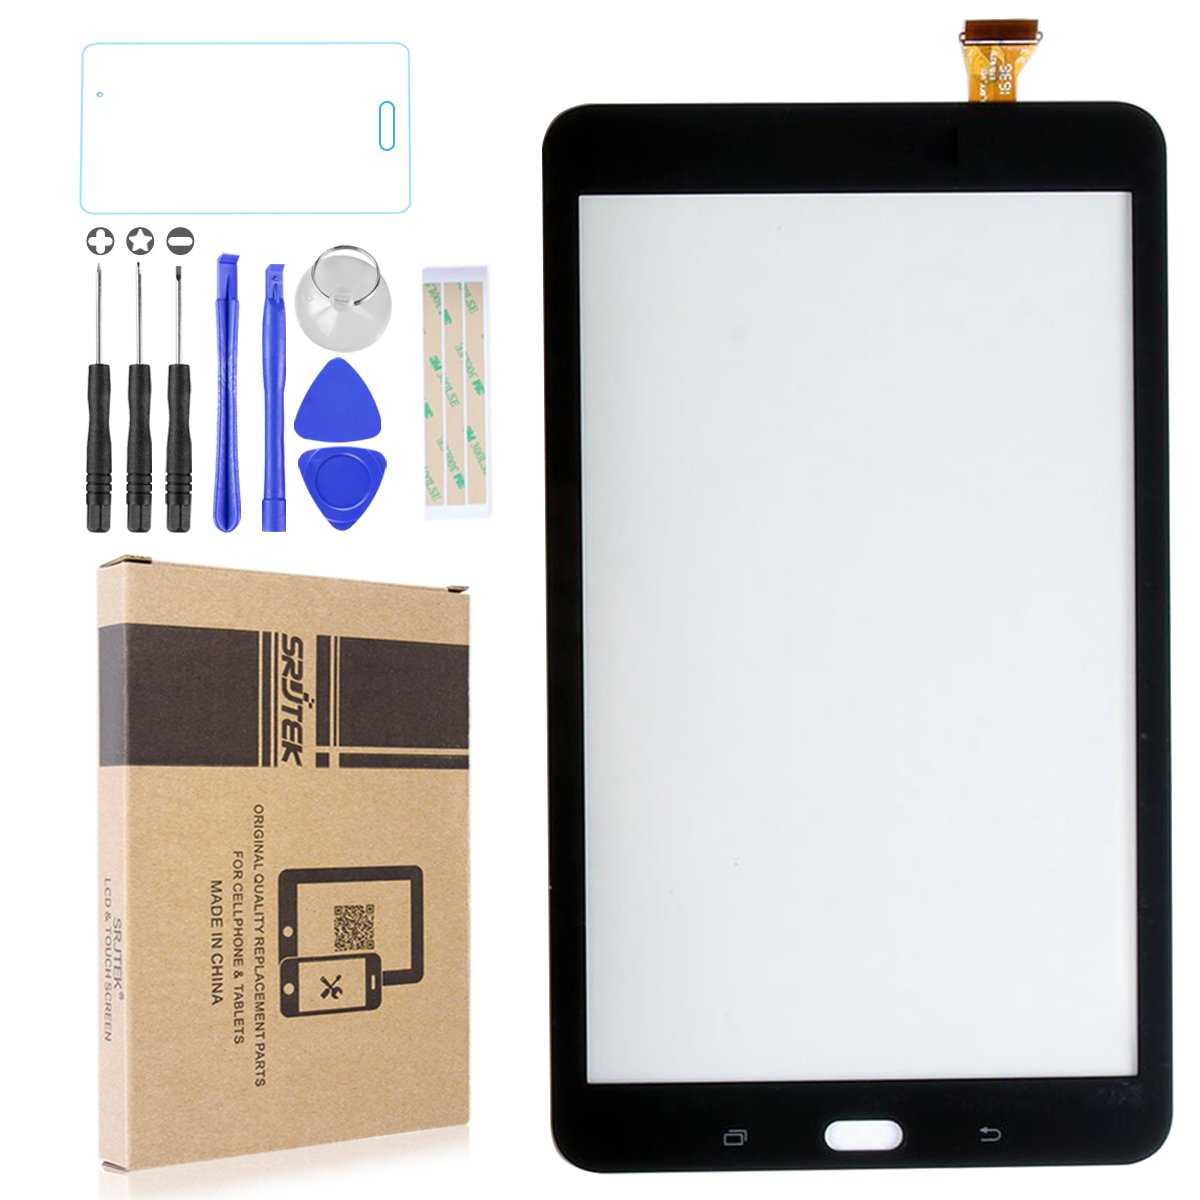 Screen Digitizer replacement for Samsung Galaxy Tab E 8.0 SM-T377,8'' Touch Screen Digitizer for SM-T377 T377 T377A T377V T377P T377T(Black)